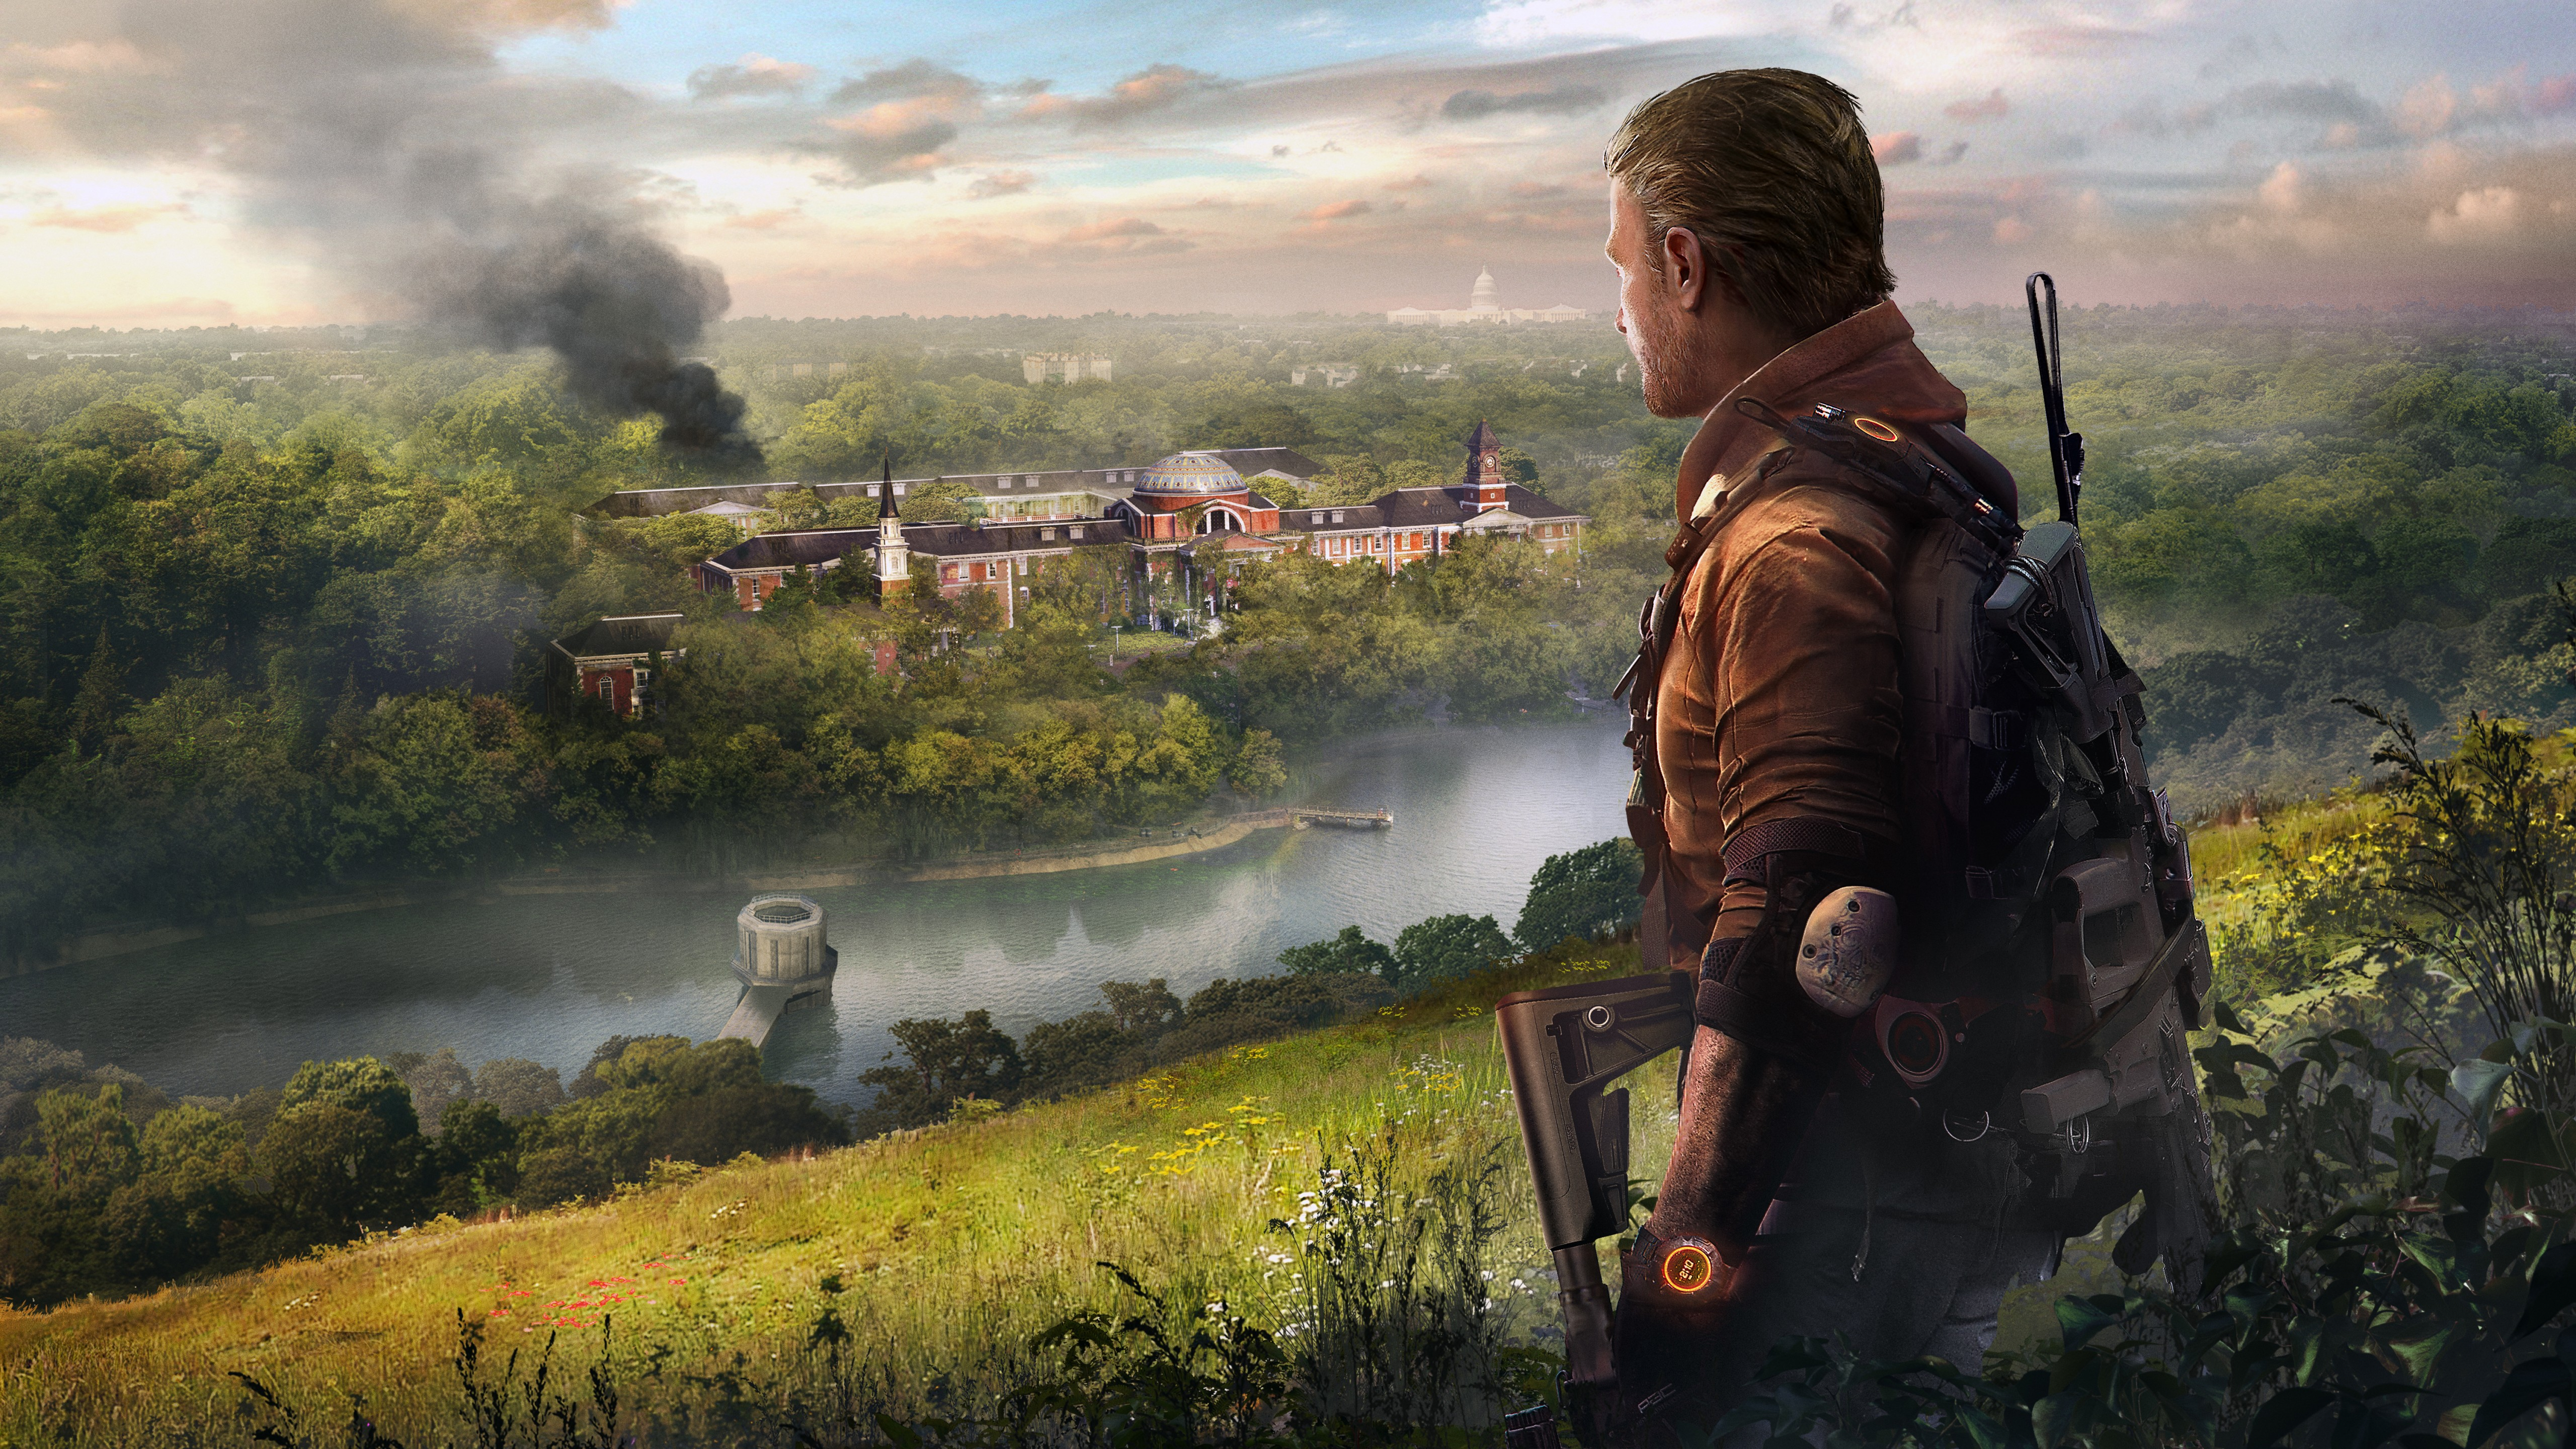 Wallpaper Tom Clancy's The division 2 Episodes